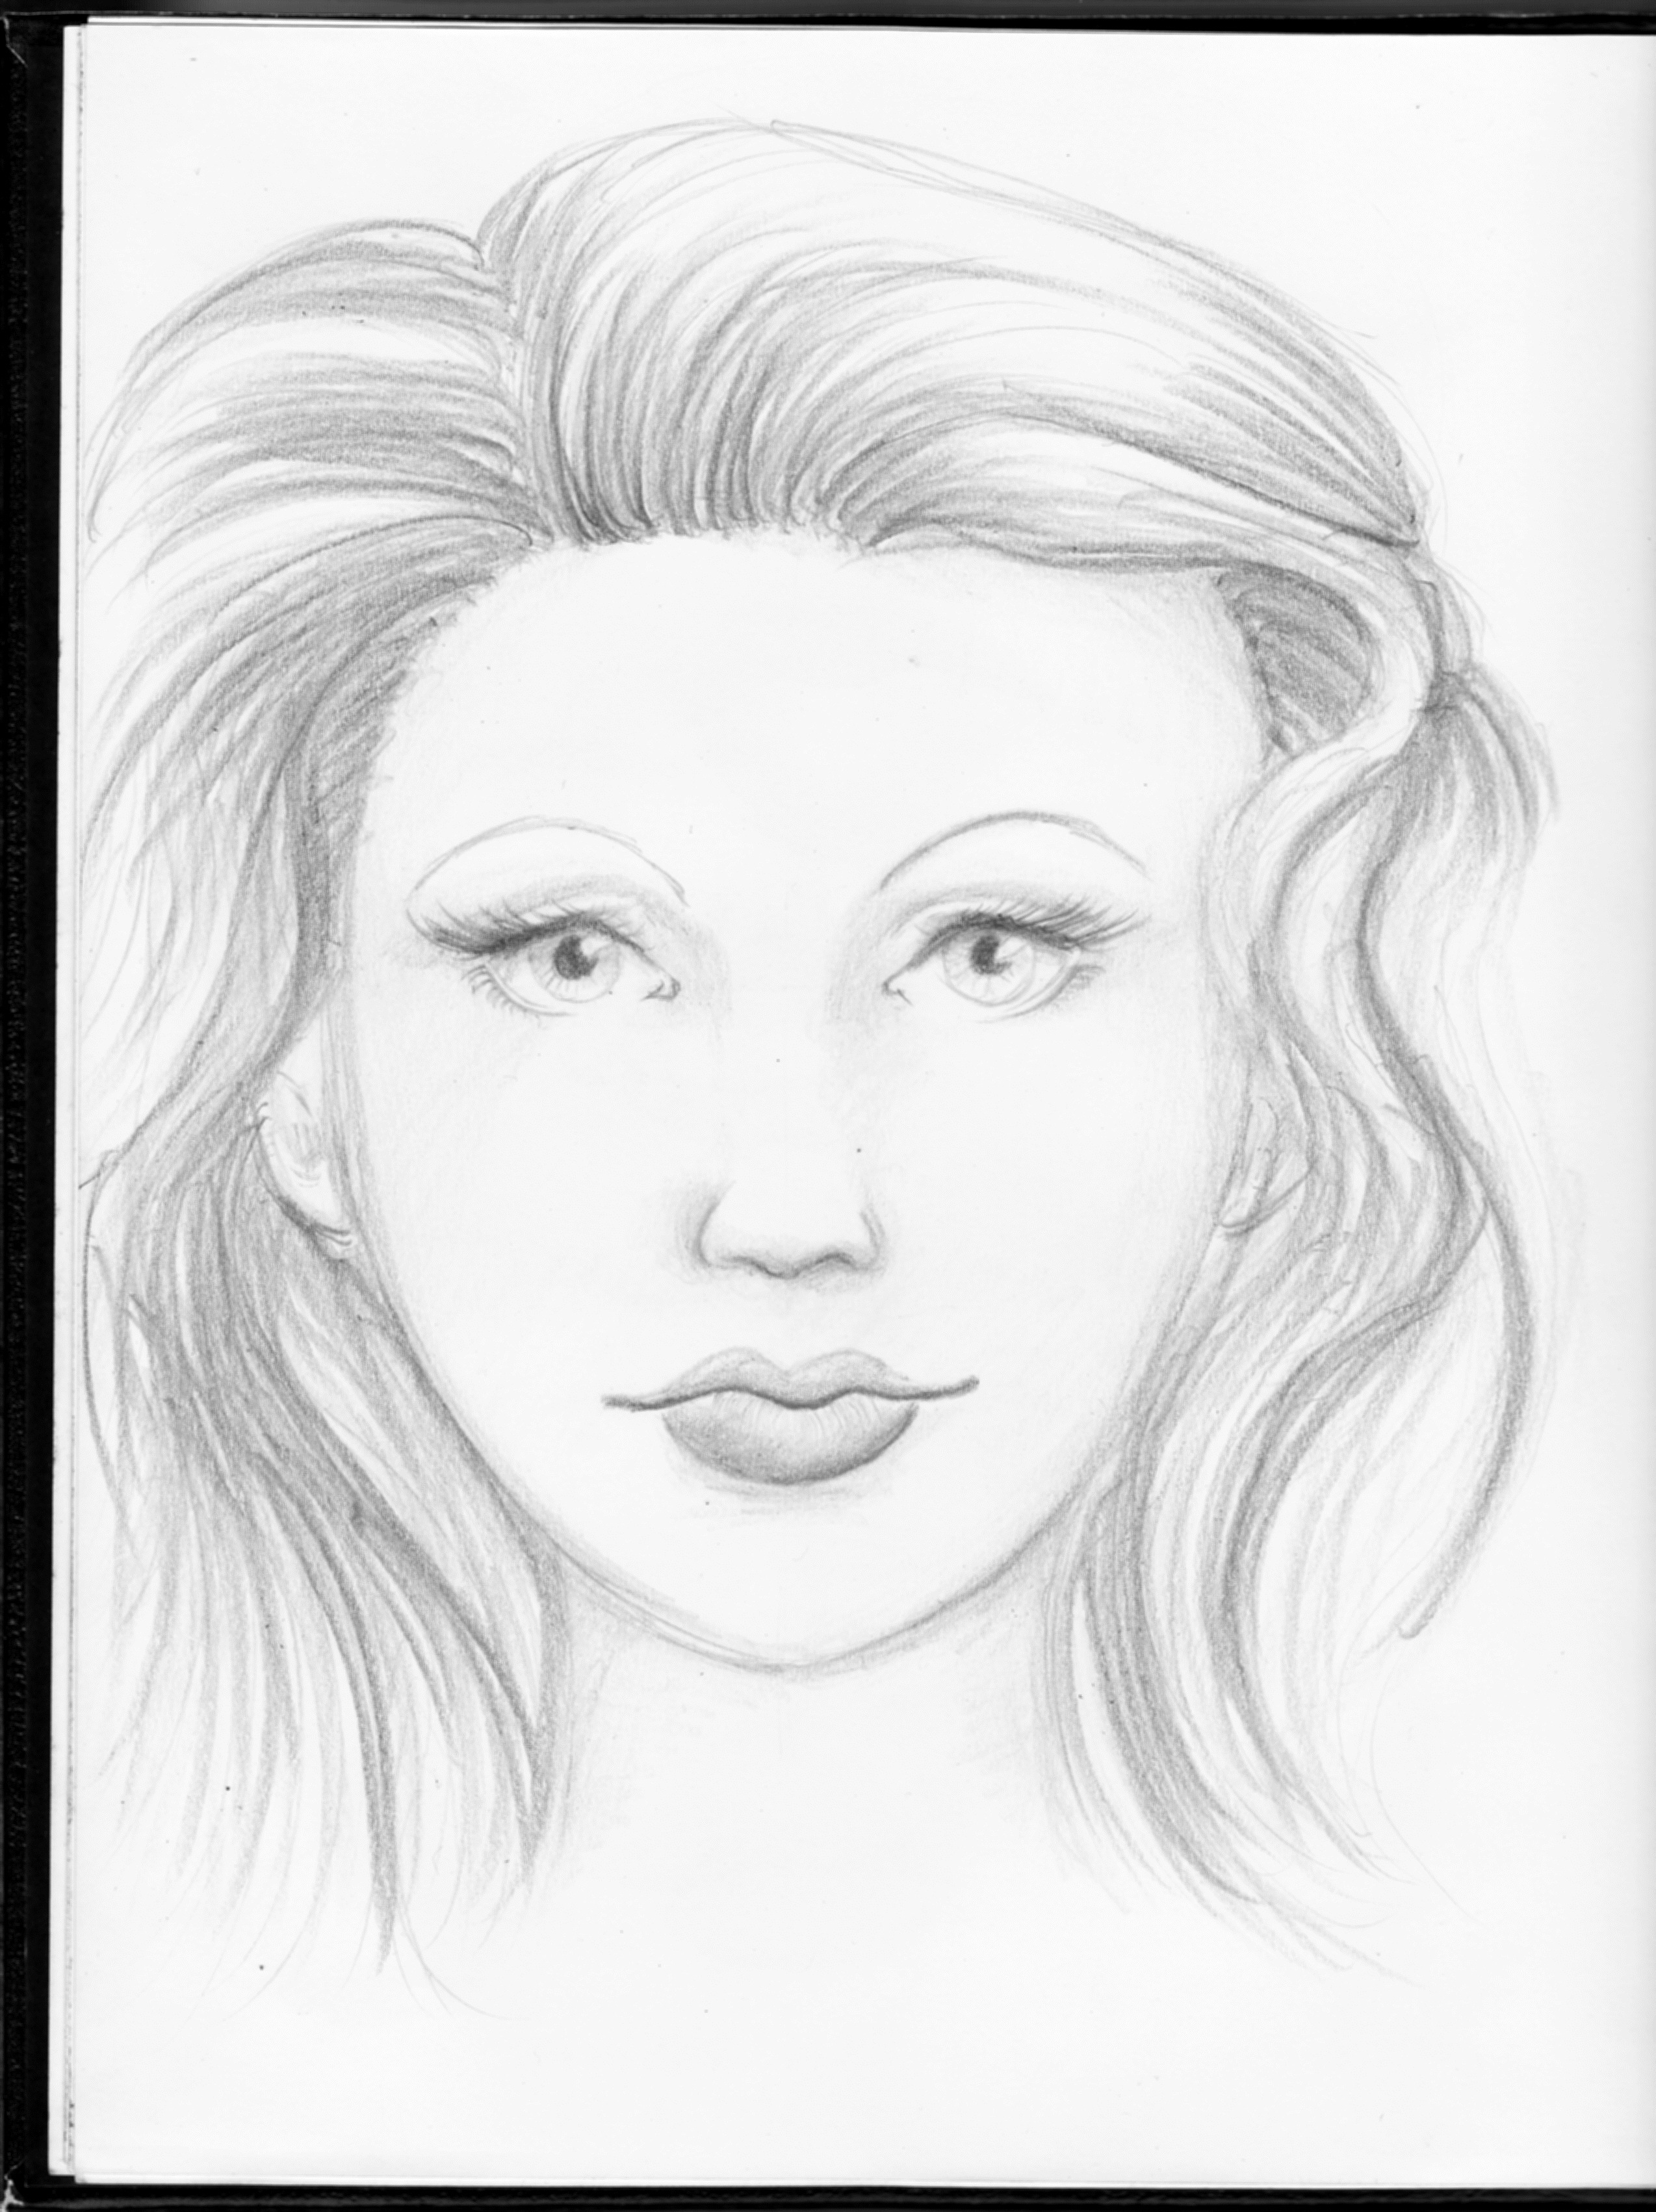 Simple Portrait Drawing At Getdrawings Com Free For